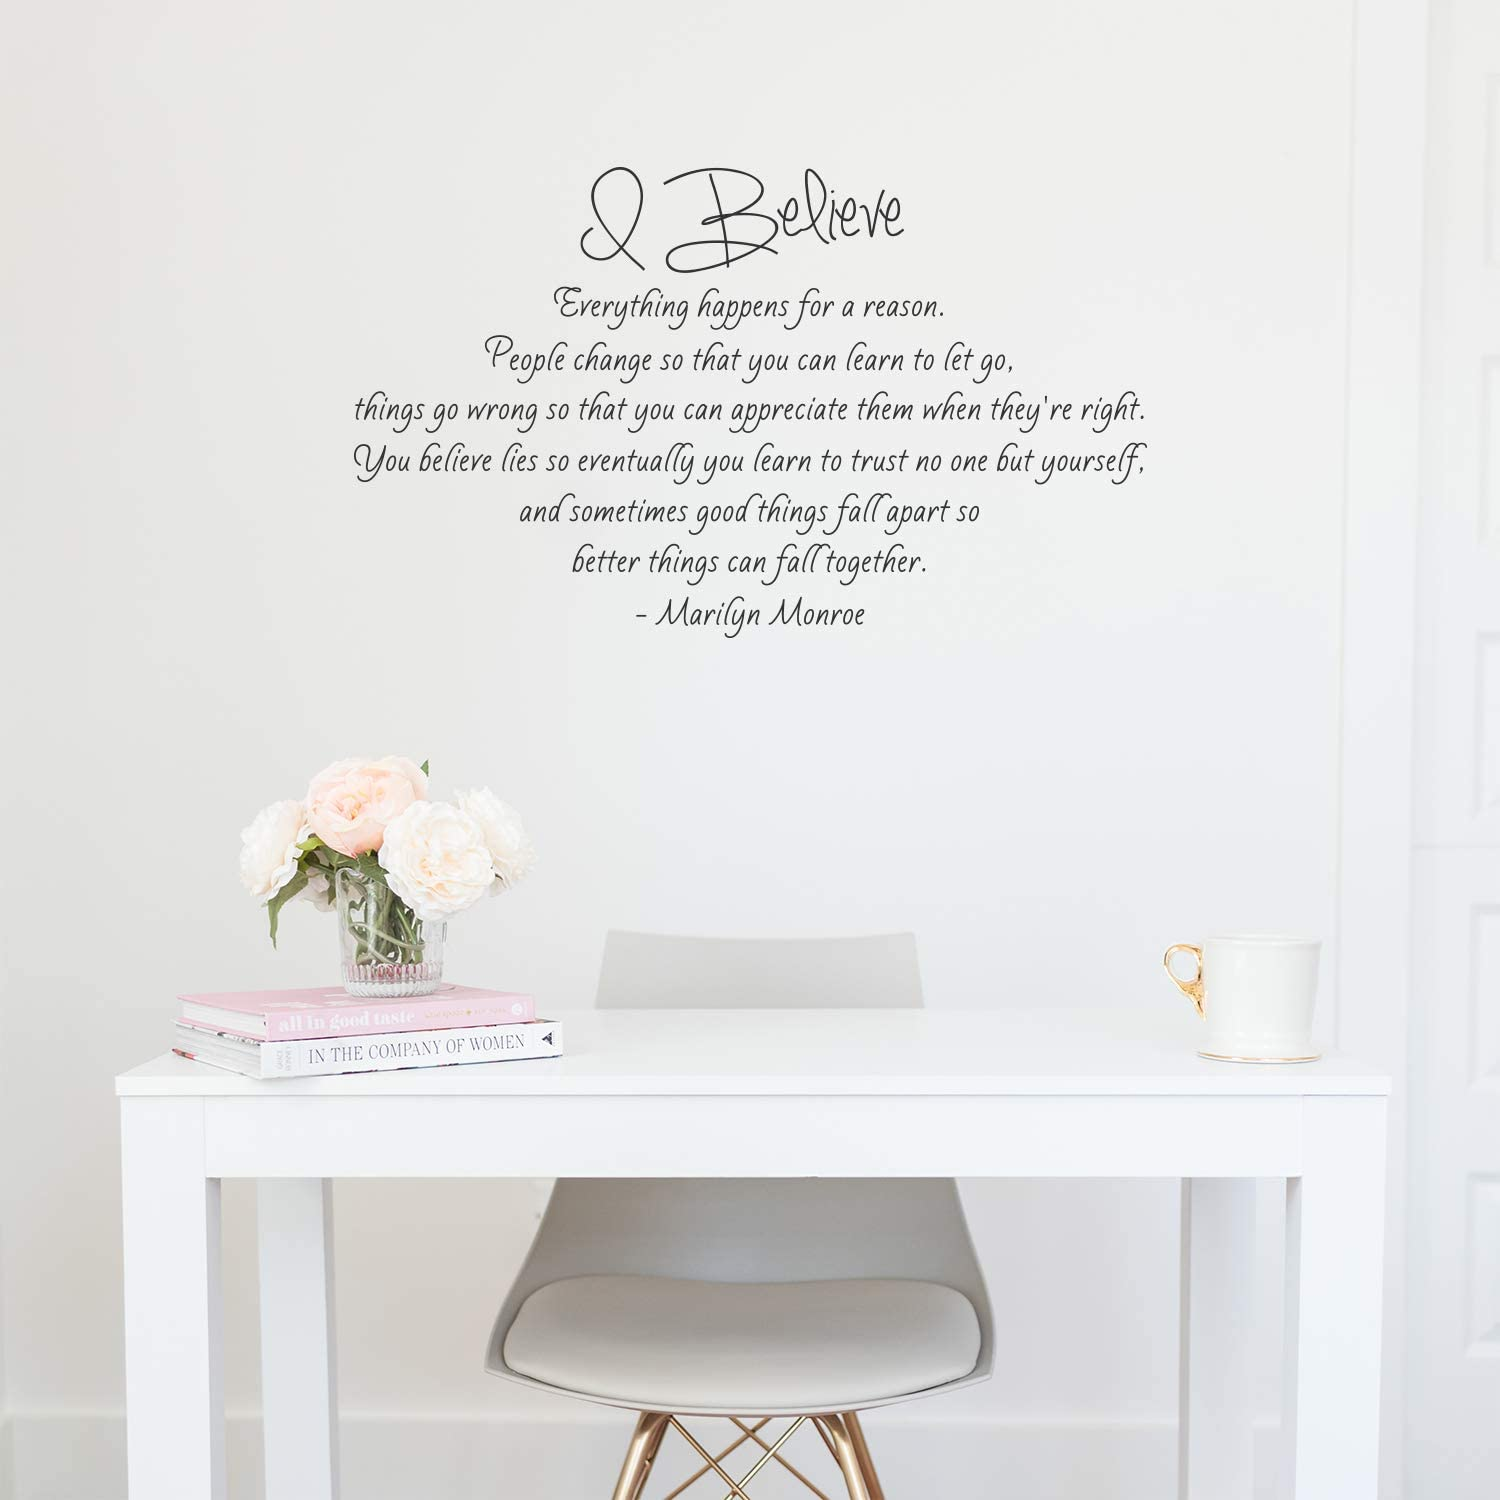 """Vinyl Wall Art Decal - I Believe - Marilyn Monroe - 21"""" x 36"""" - Modern Inspirational Cute Quote Sticker for Bedroom Closet Living Room Office Decor"""